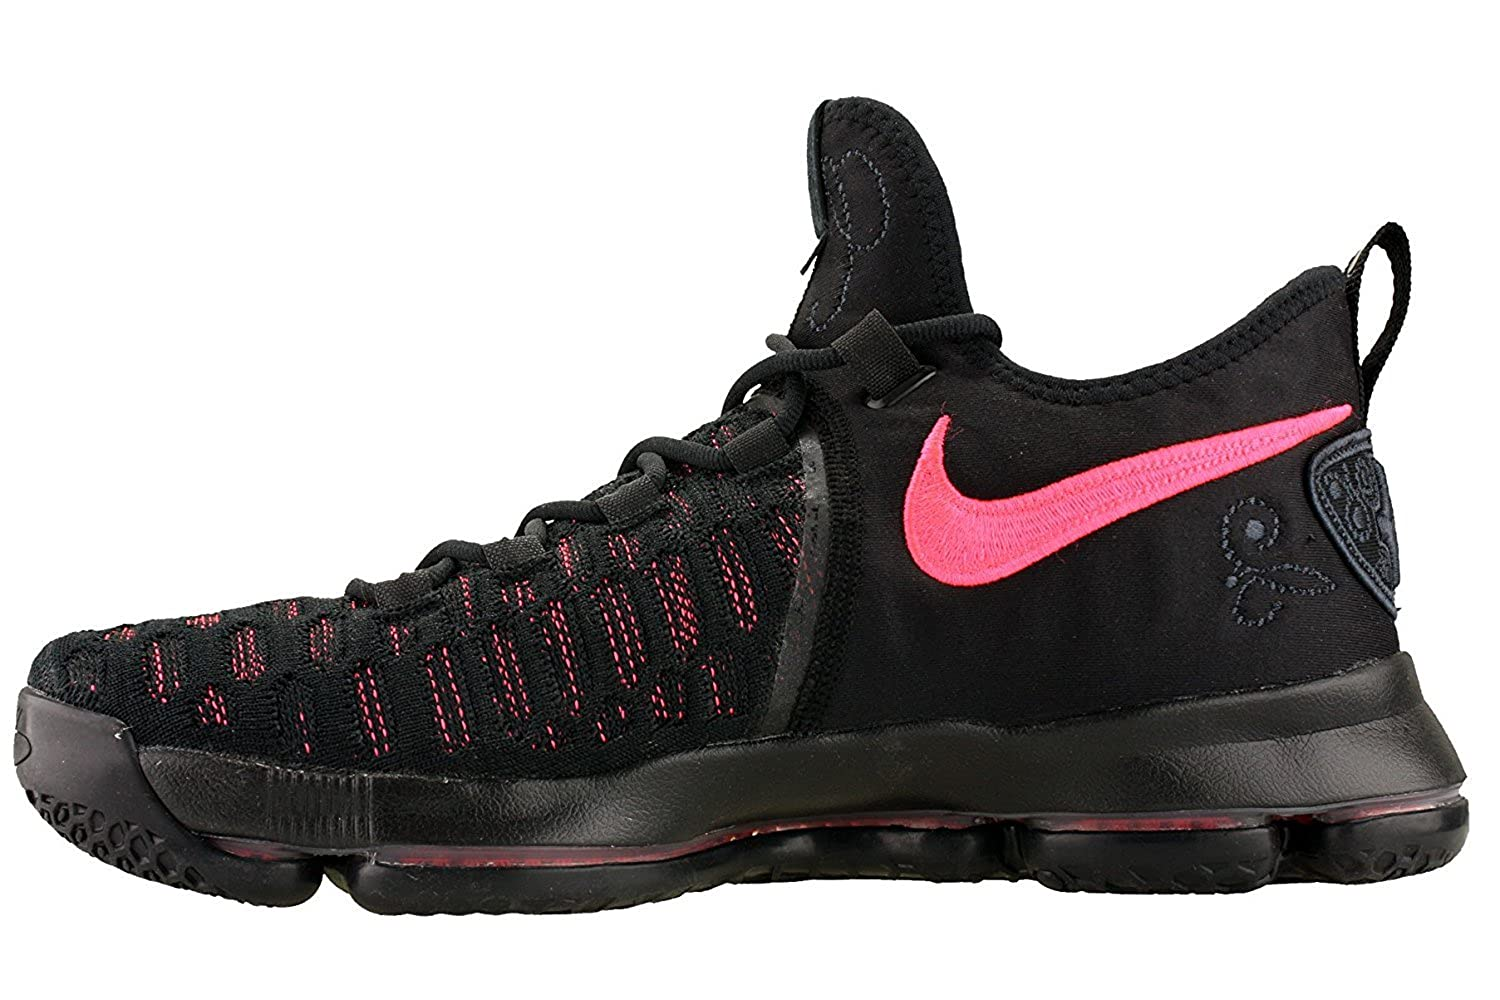 419f833a1b1e0 Nike Zoom KD 9 Men's Basketball Shoes (11.5, Black/Hot Punch)